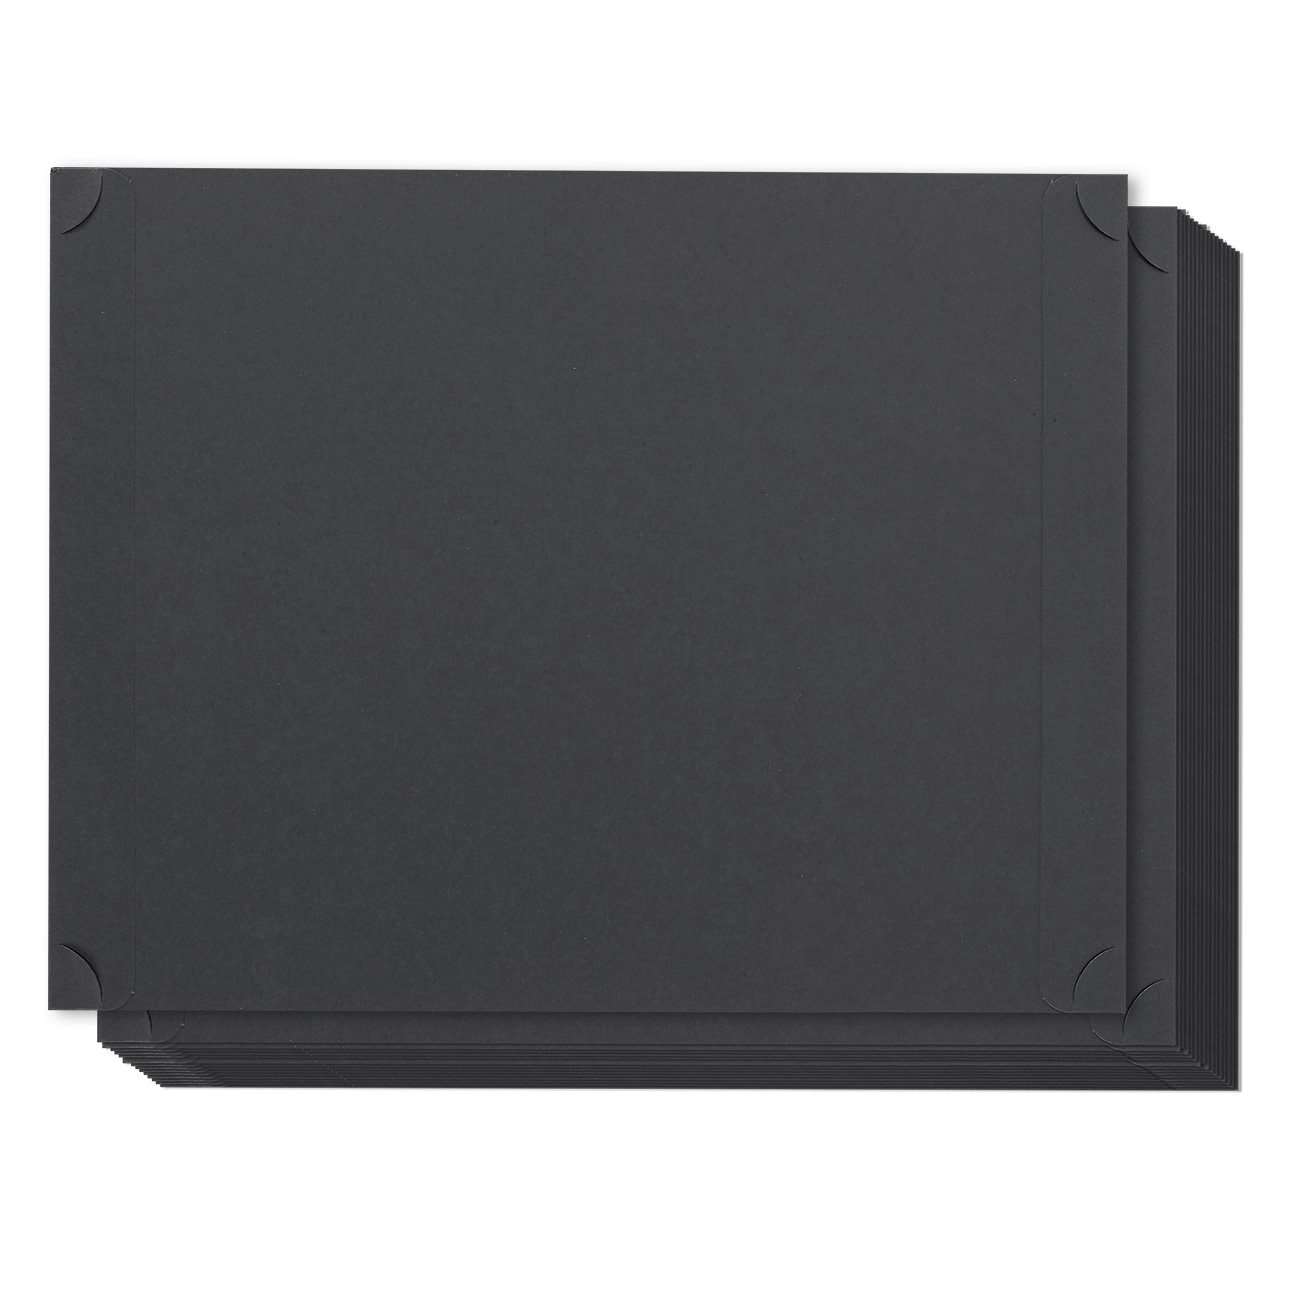 24-Pack Certificate Holder - Diploma Holder, Single Sided Holder for Letter-Sized Award Certificates and Documents Display, Black, 11.2 x 8.8 inches